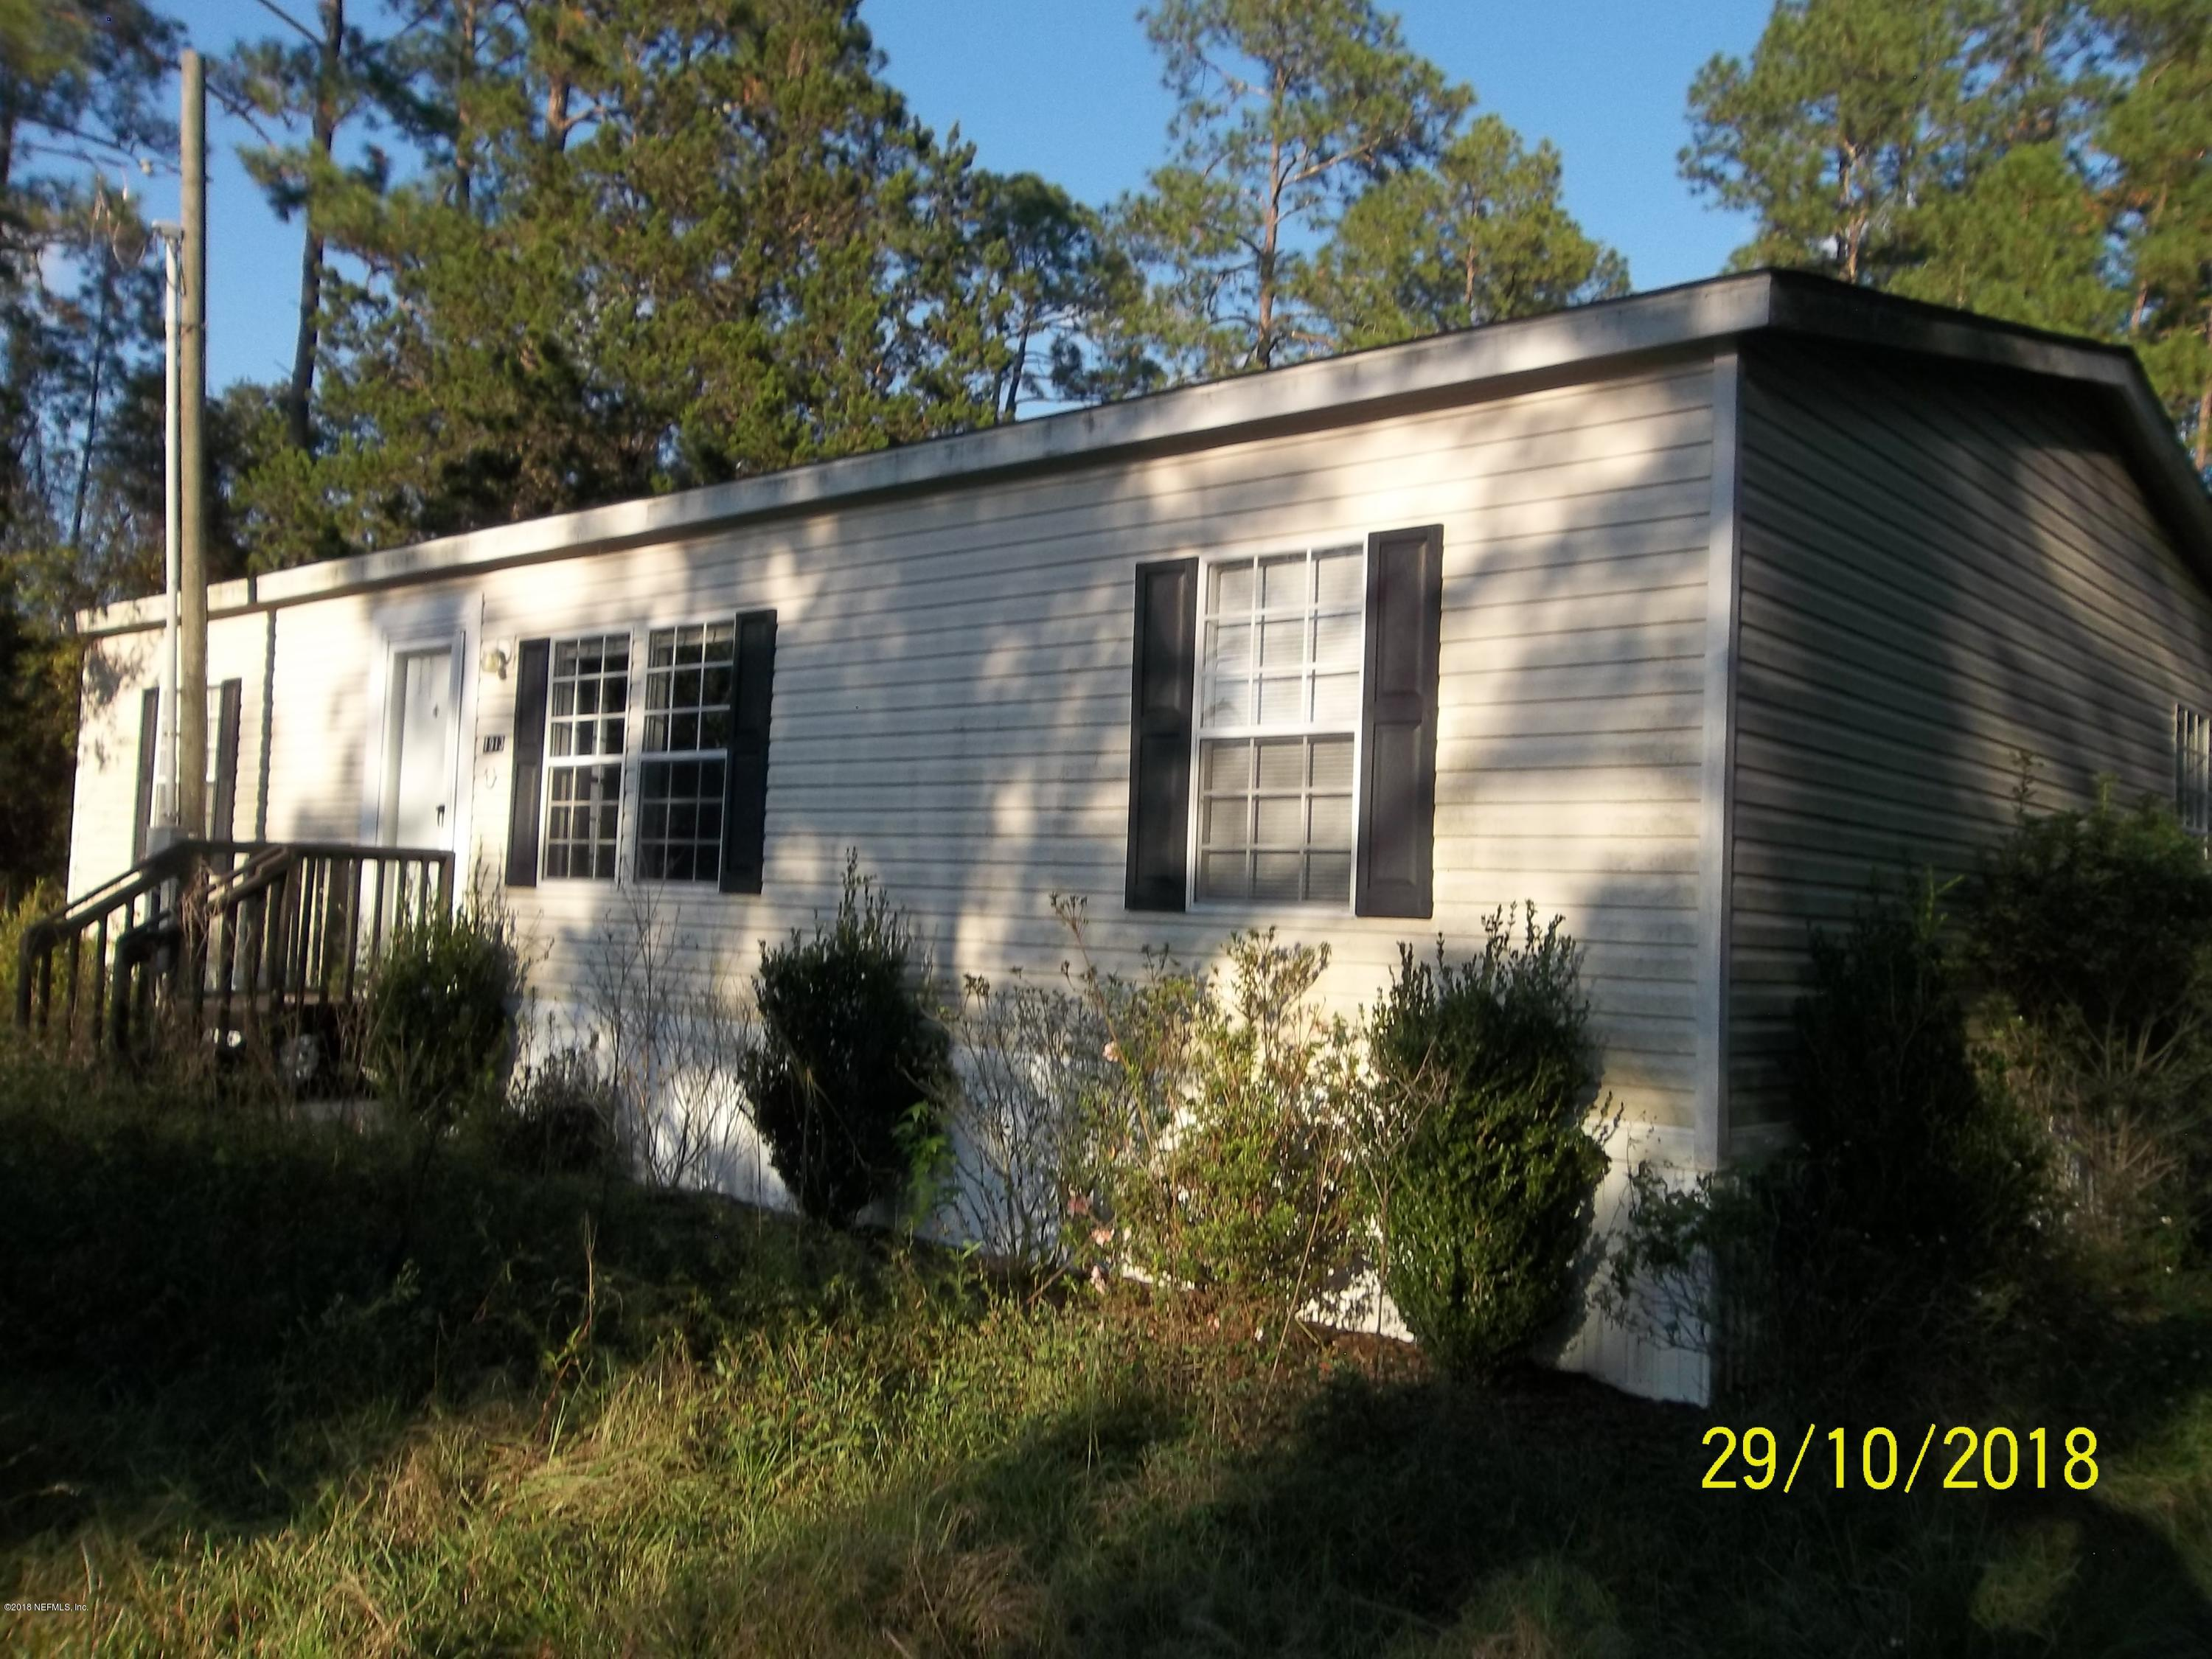 1913 US HIGHWAY 301, HAWTHORNE, FLORIDA 32640, 3 Bedrooms Bedrooms, ,2 BathroomsBathrooms,Residential - mobile home,For sale,US HIGHWAY 301,965164